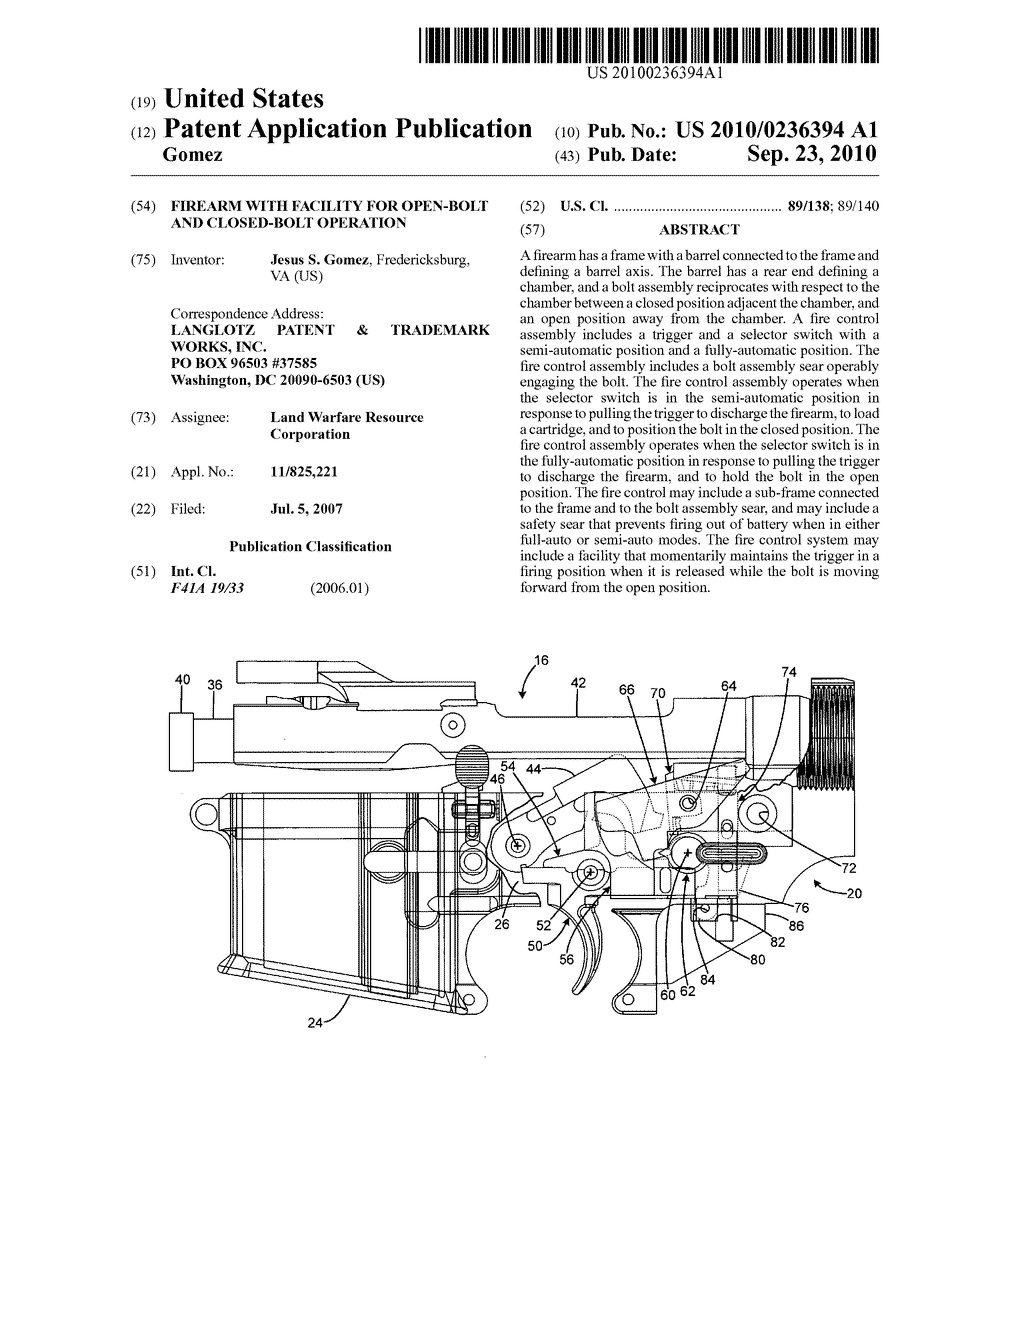 FIREARM WITH FACILITY FOR OPEN-BOLT AND CLOSED-BOLT